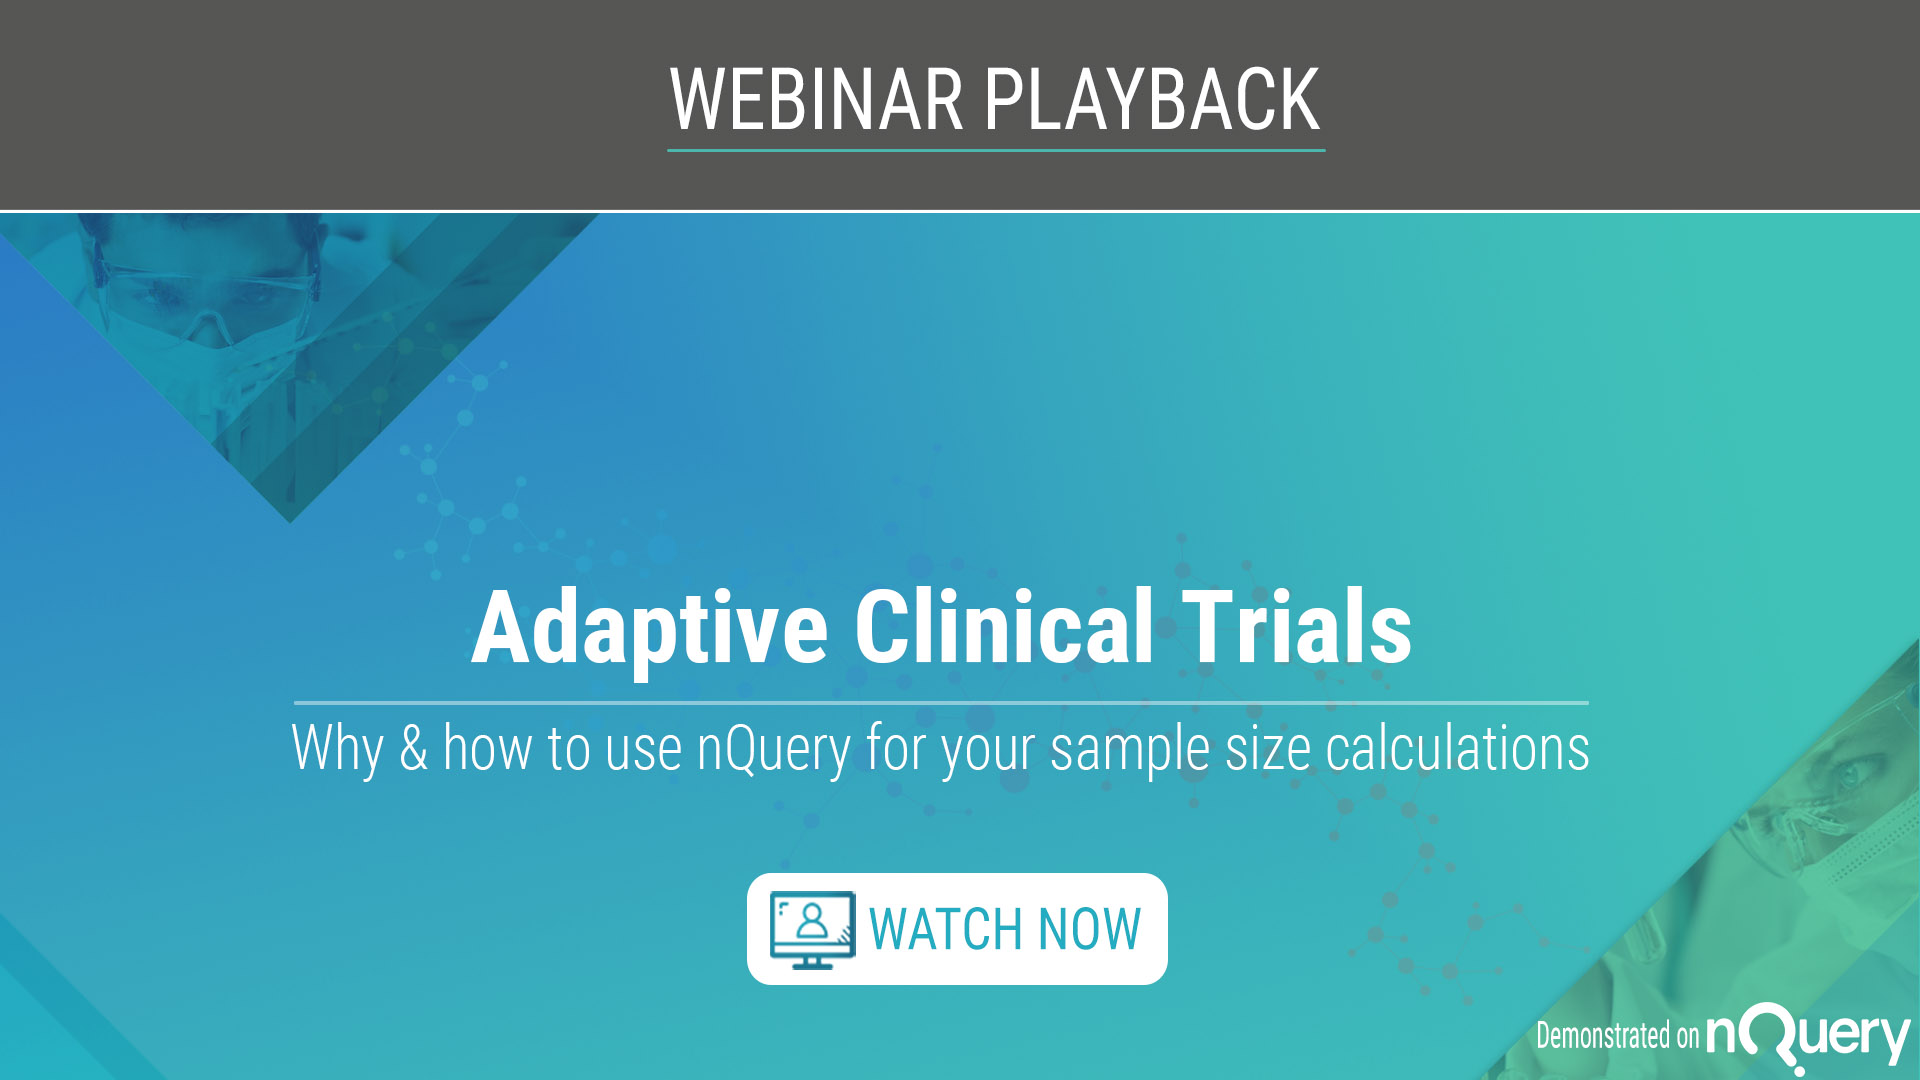 adaptive-clinical-trials-why-and-how-to-use-nquery-for-your-sample-size-calculationsdemand-1920-1080